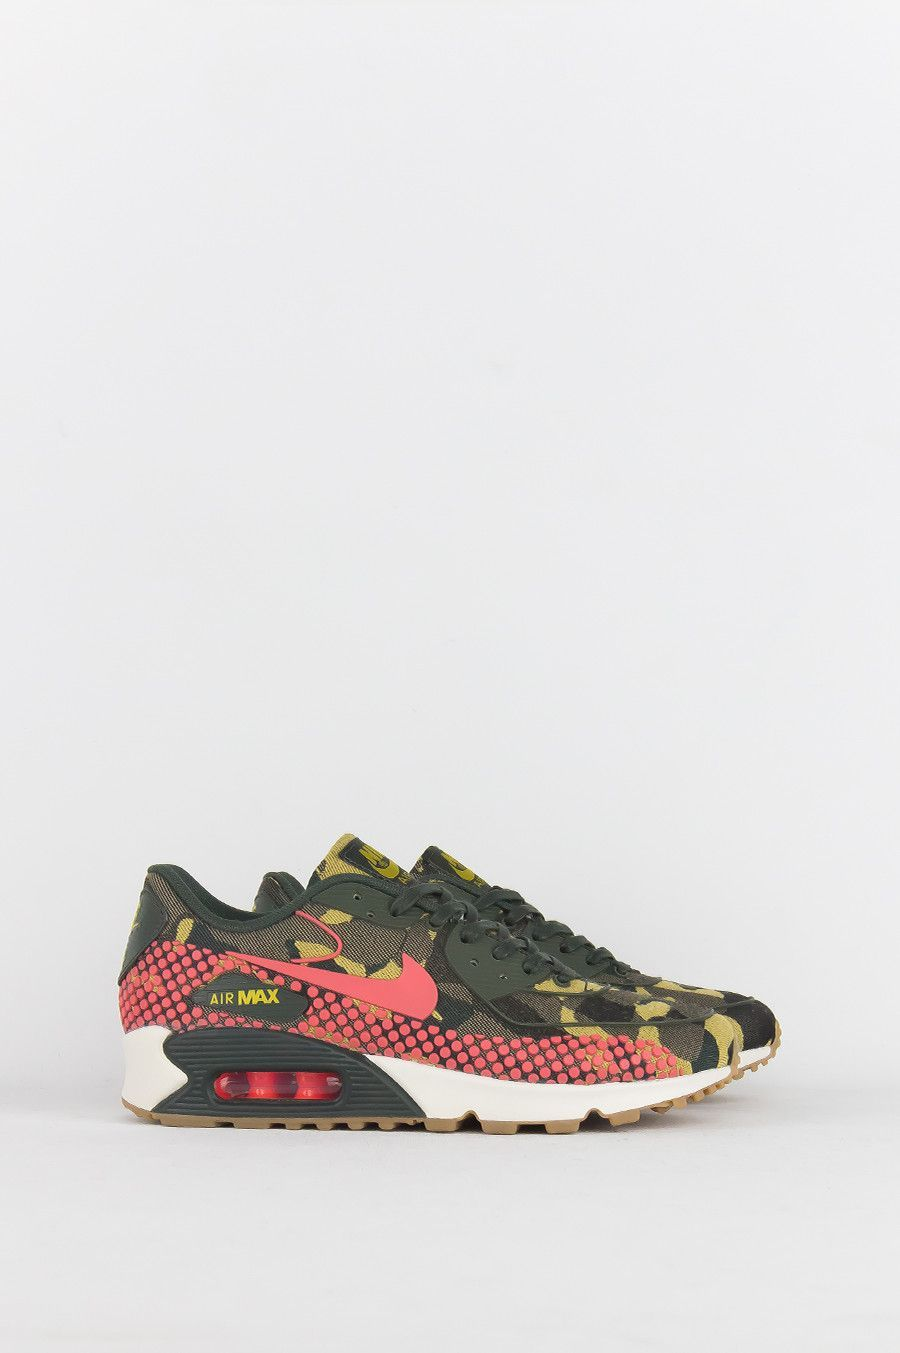 NIKE WOMENS AIR MAX 90 JCRD PRM DESERT CAMO HOT LAVA